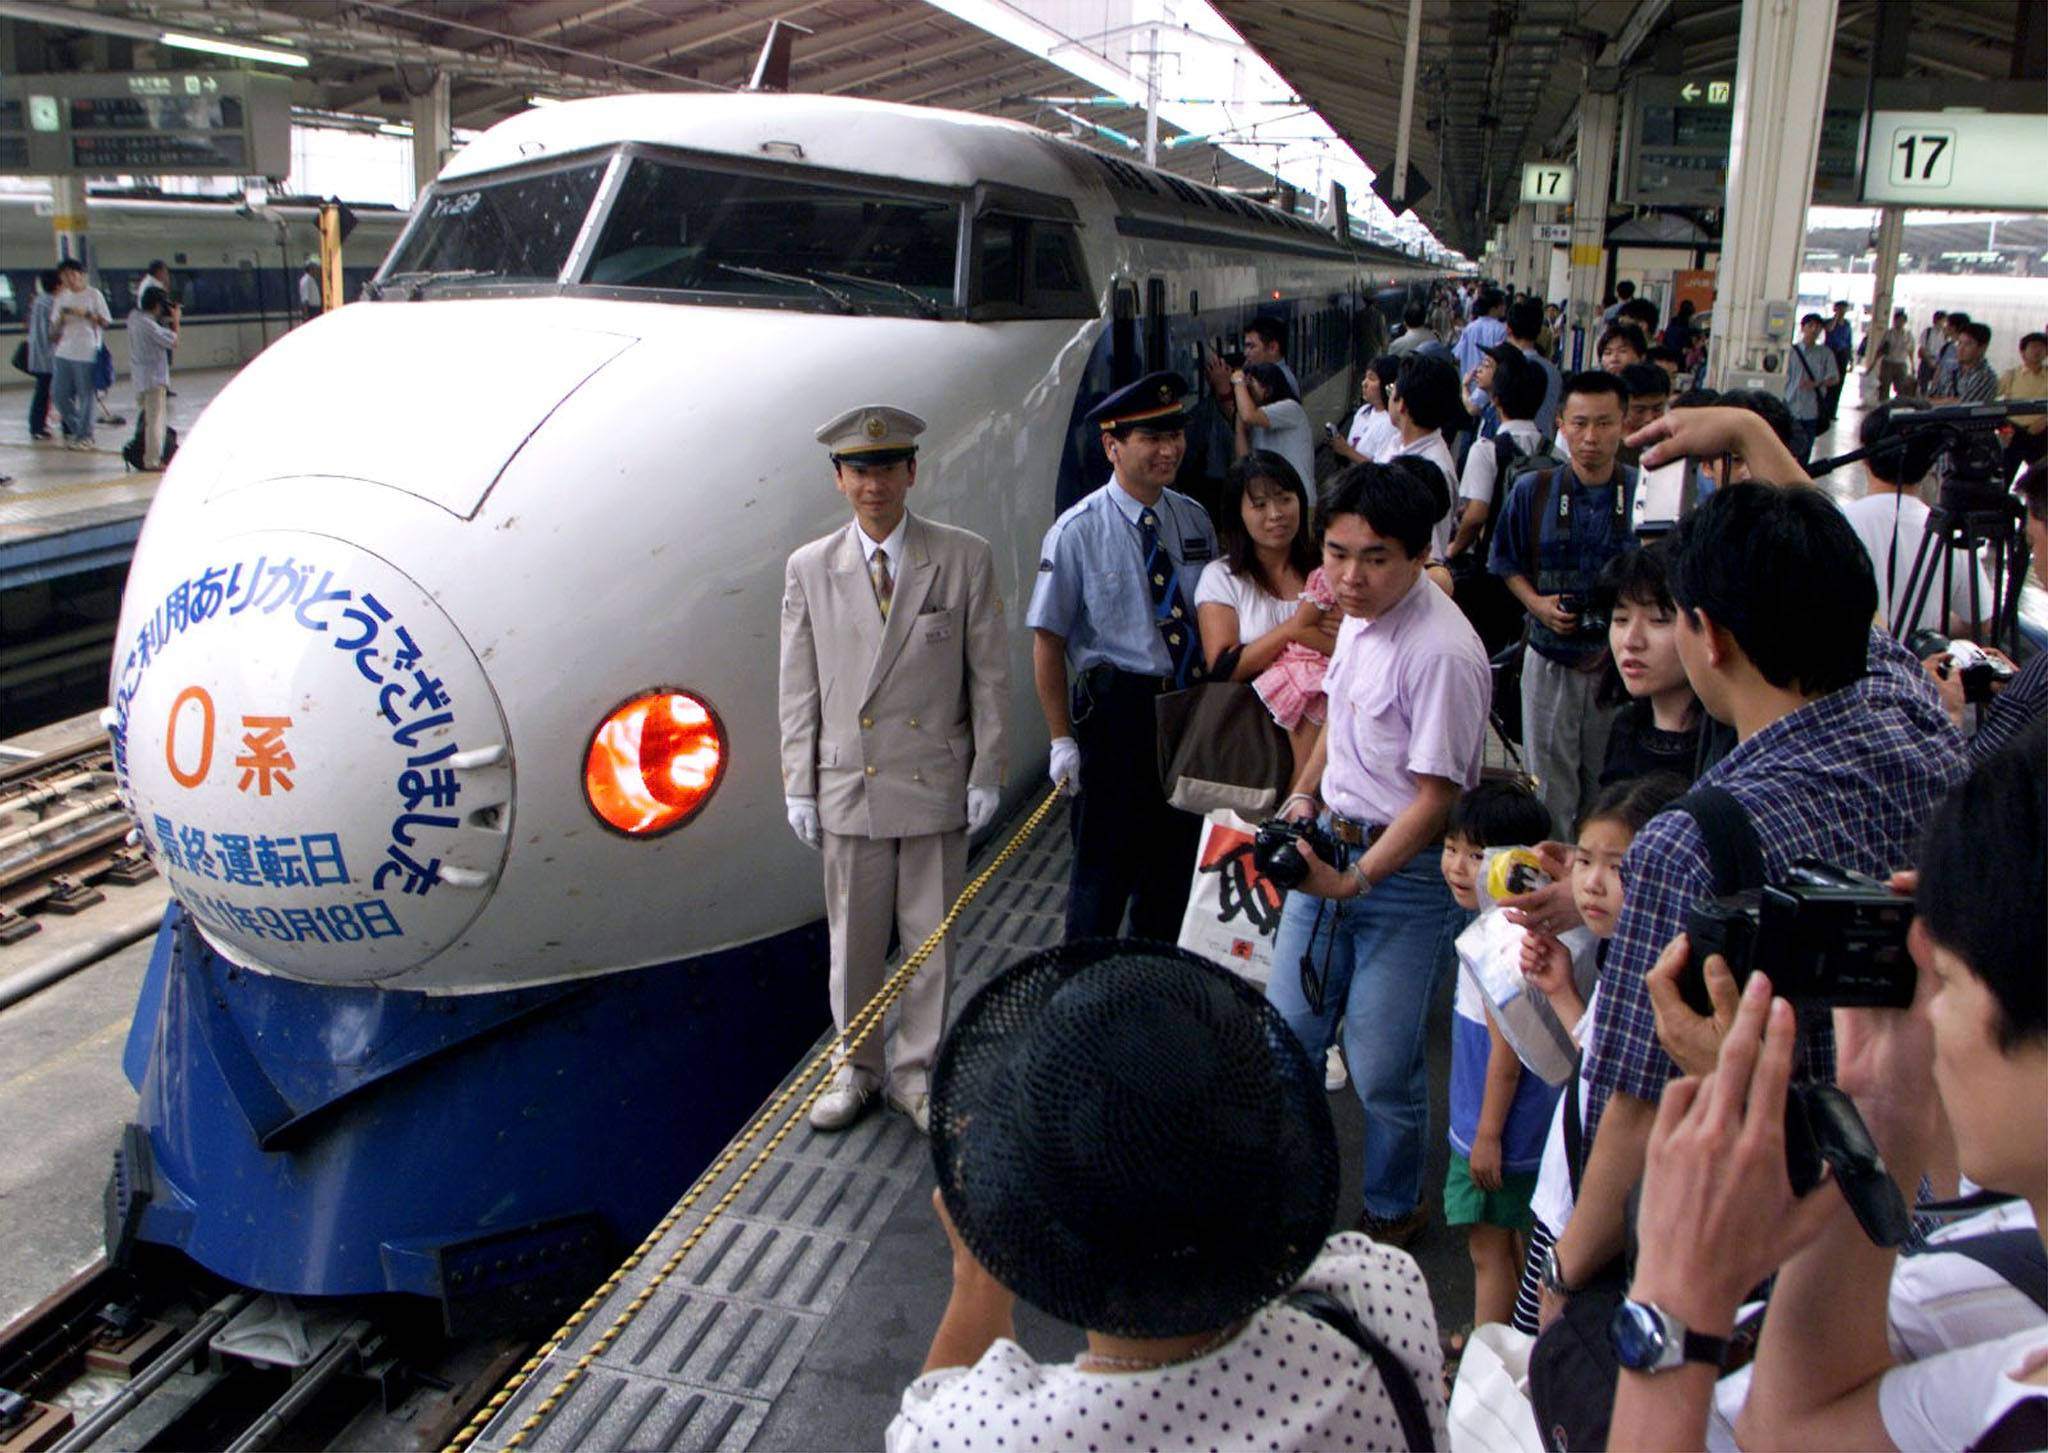 Train fans crowd around an original Zero bullet train model at Tokyo Station. The shinkansen started its run in 1964, the year of Tokyo Olympics. | REUTERS